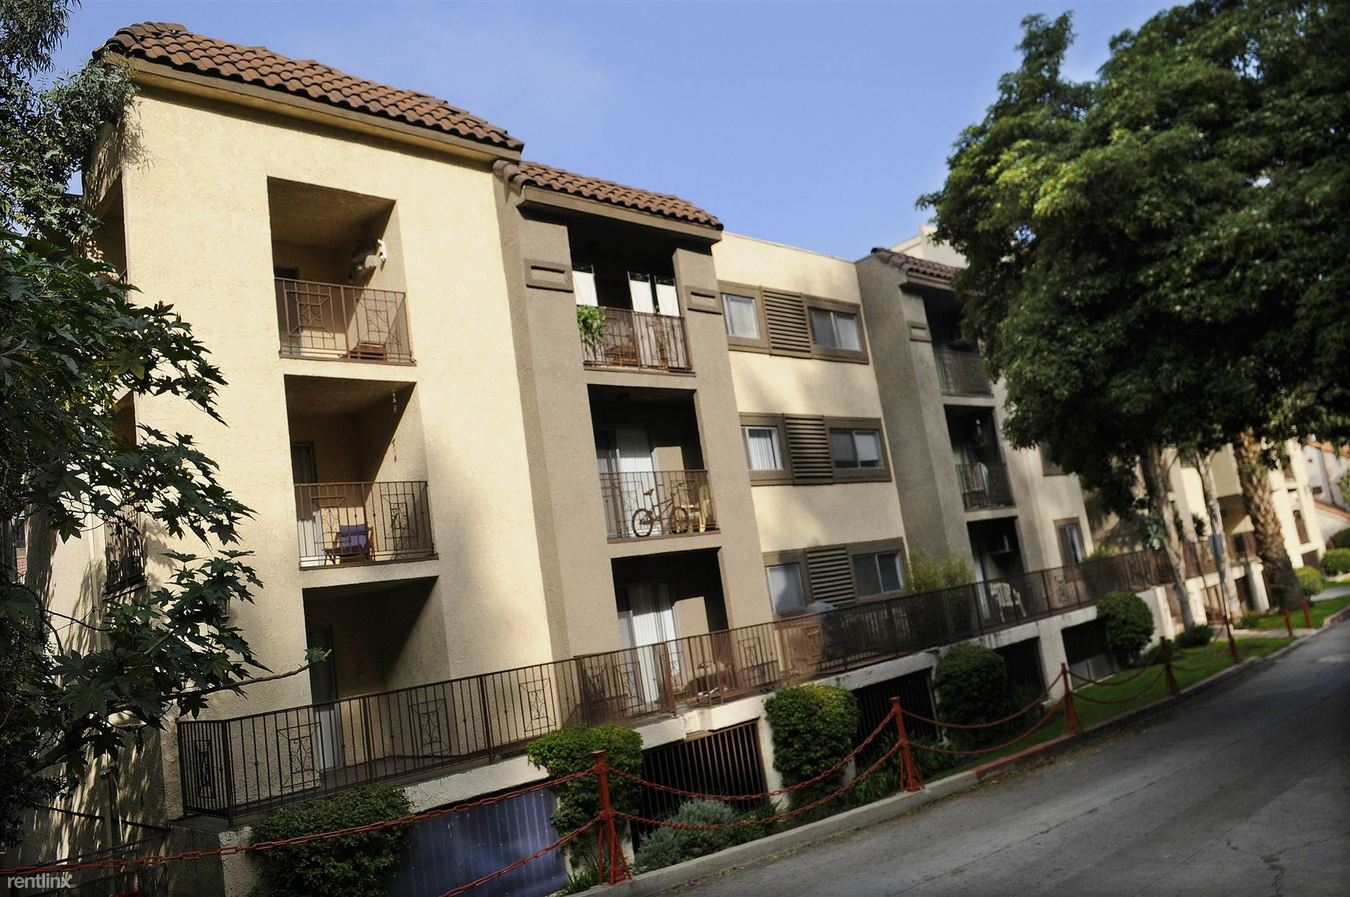 1 Bedroom 1 Bathroom Apartment for rent at Las Palmas Villa in Hollywood, CA